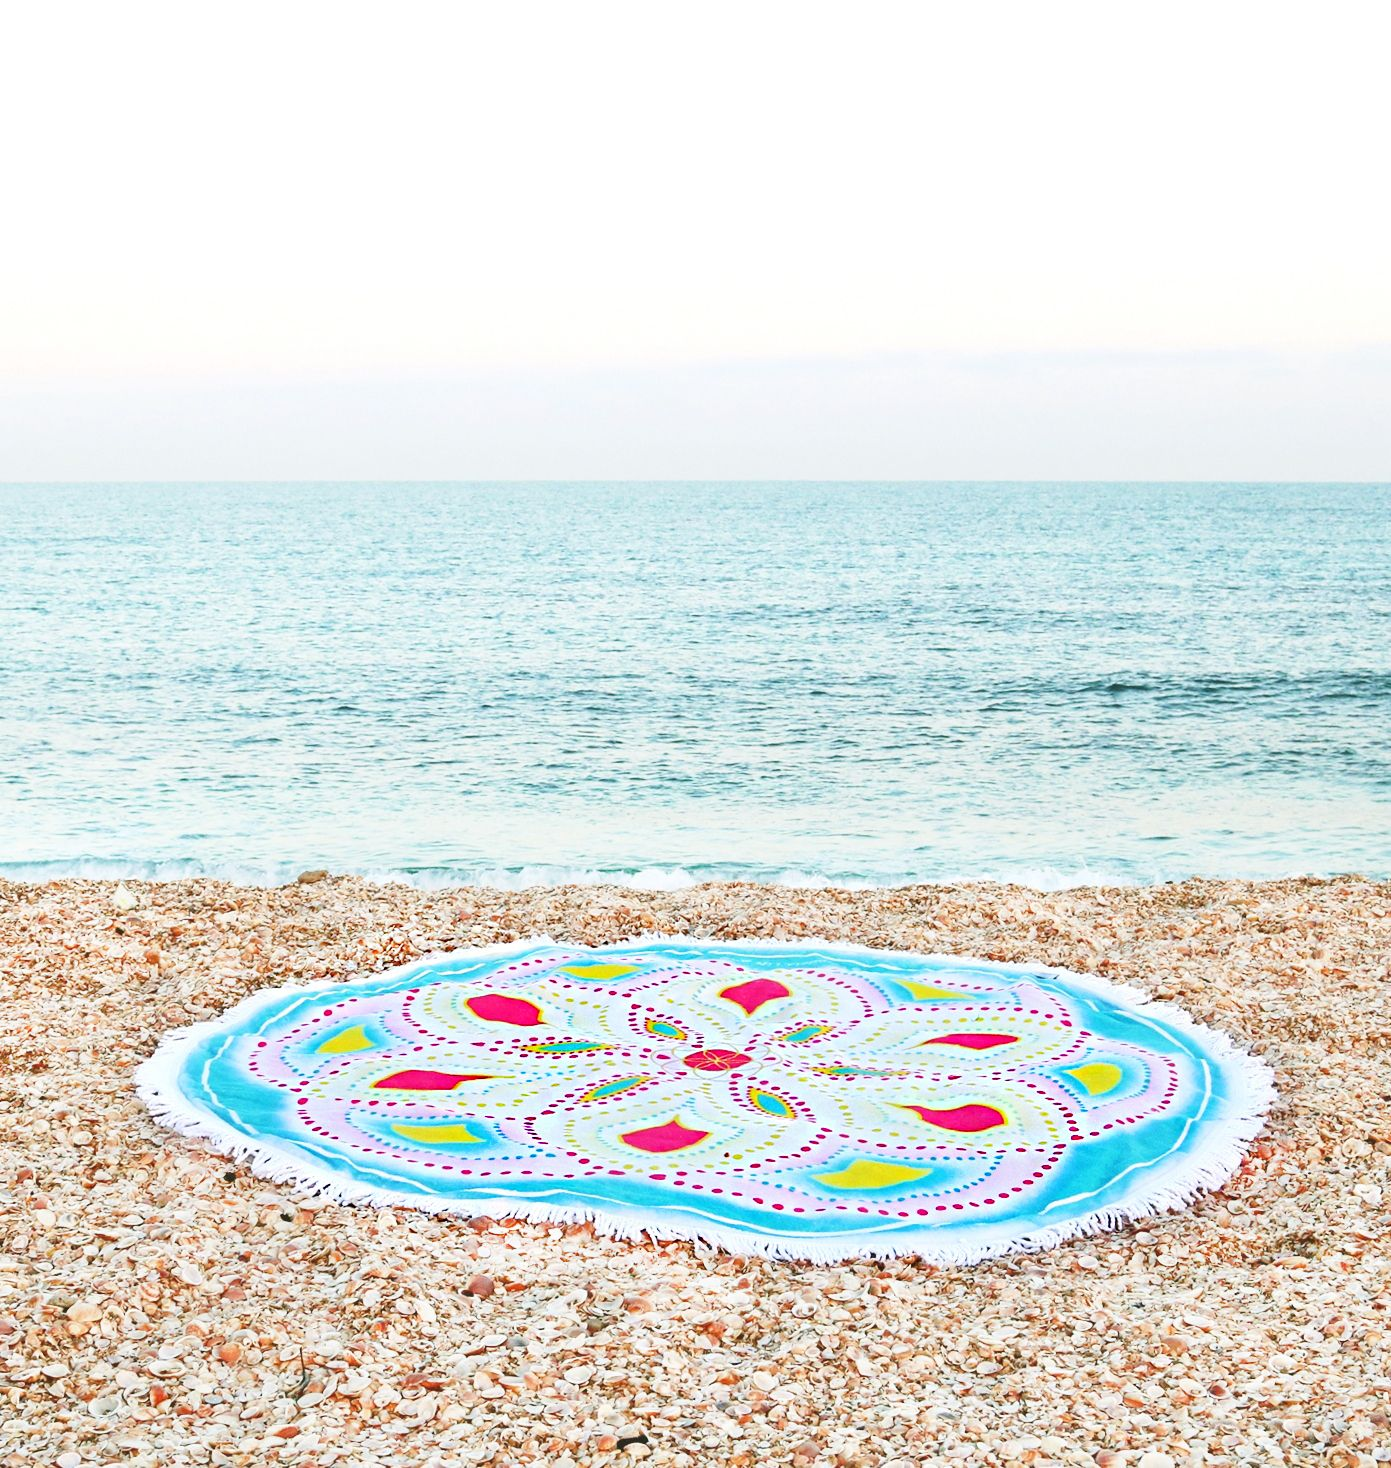 This Amazing Round Terry Beach Towel So Soft And Thick Is